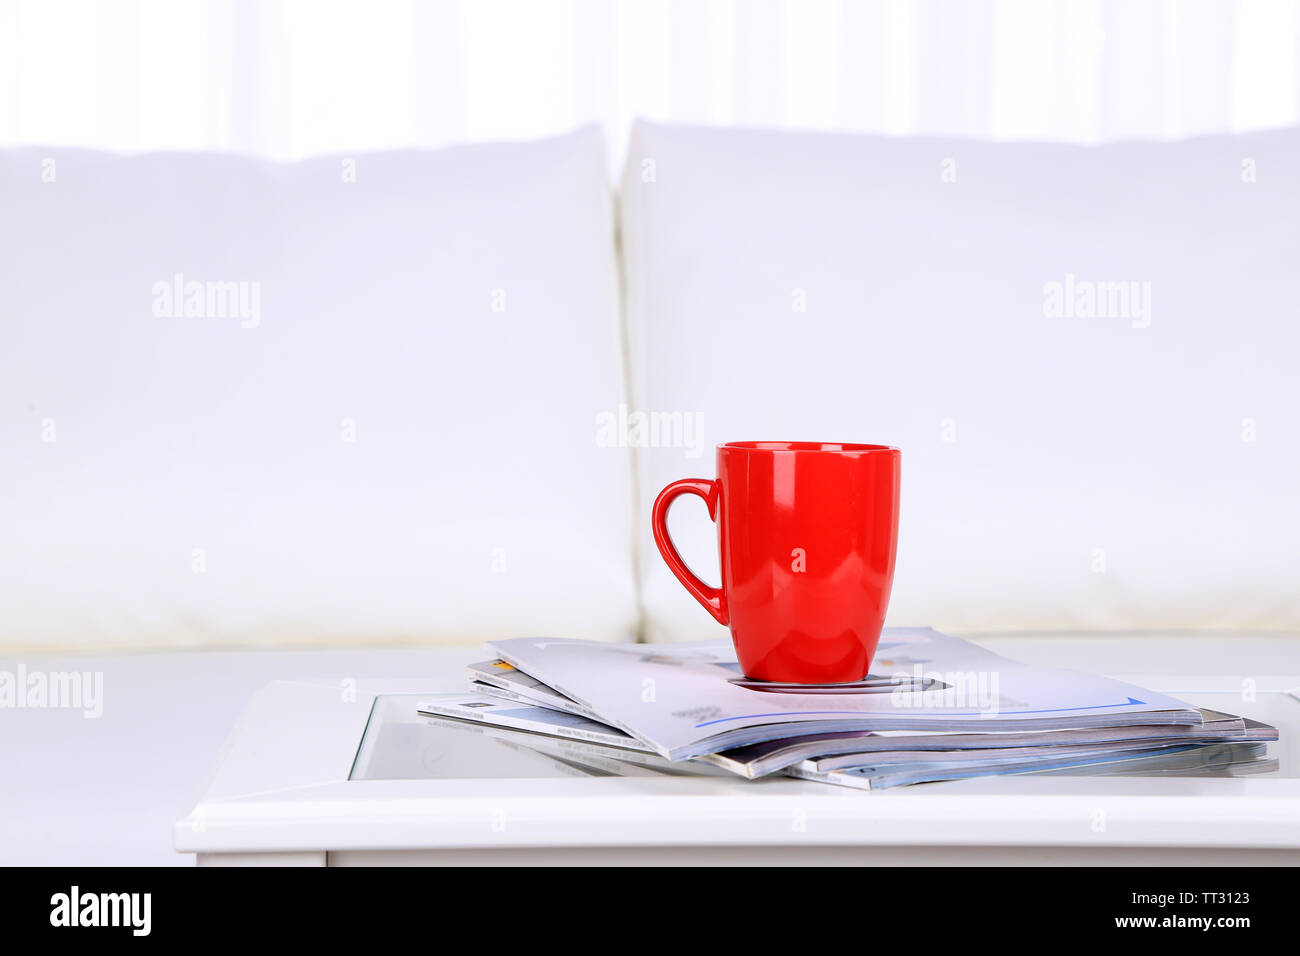 Magazines and cup on coffee table in room - Stock Image